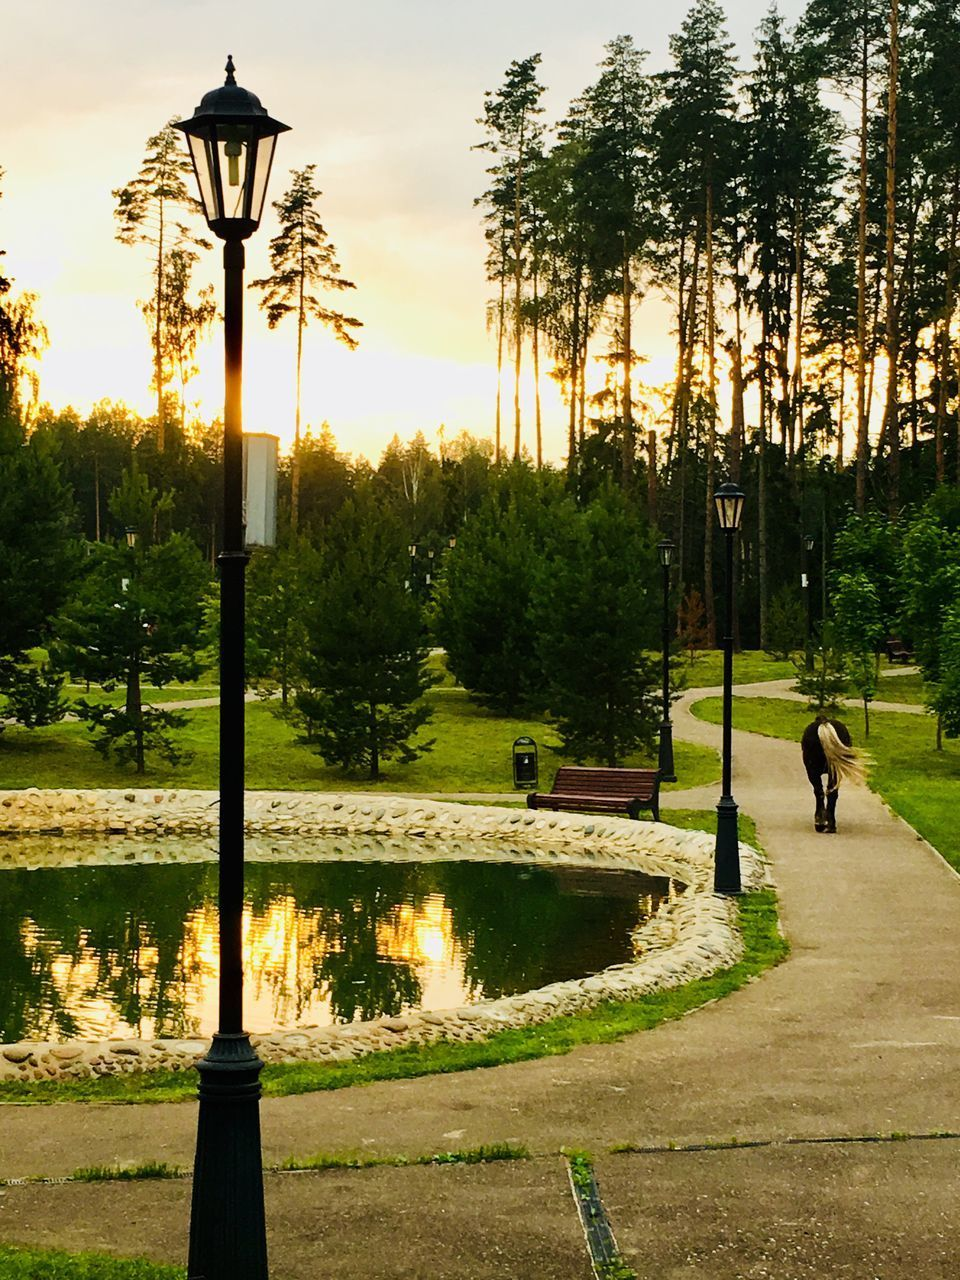 tree, plant, sky, nature, sunset, grass, park, real people, water, footpath, growth, lighting equipment, beauty in nature, park - man made space, outdoors, day, men, lake, street light